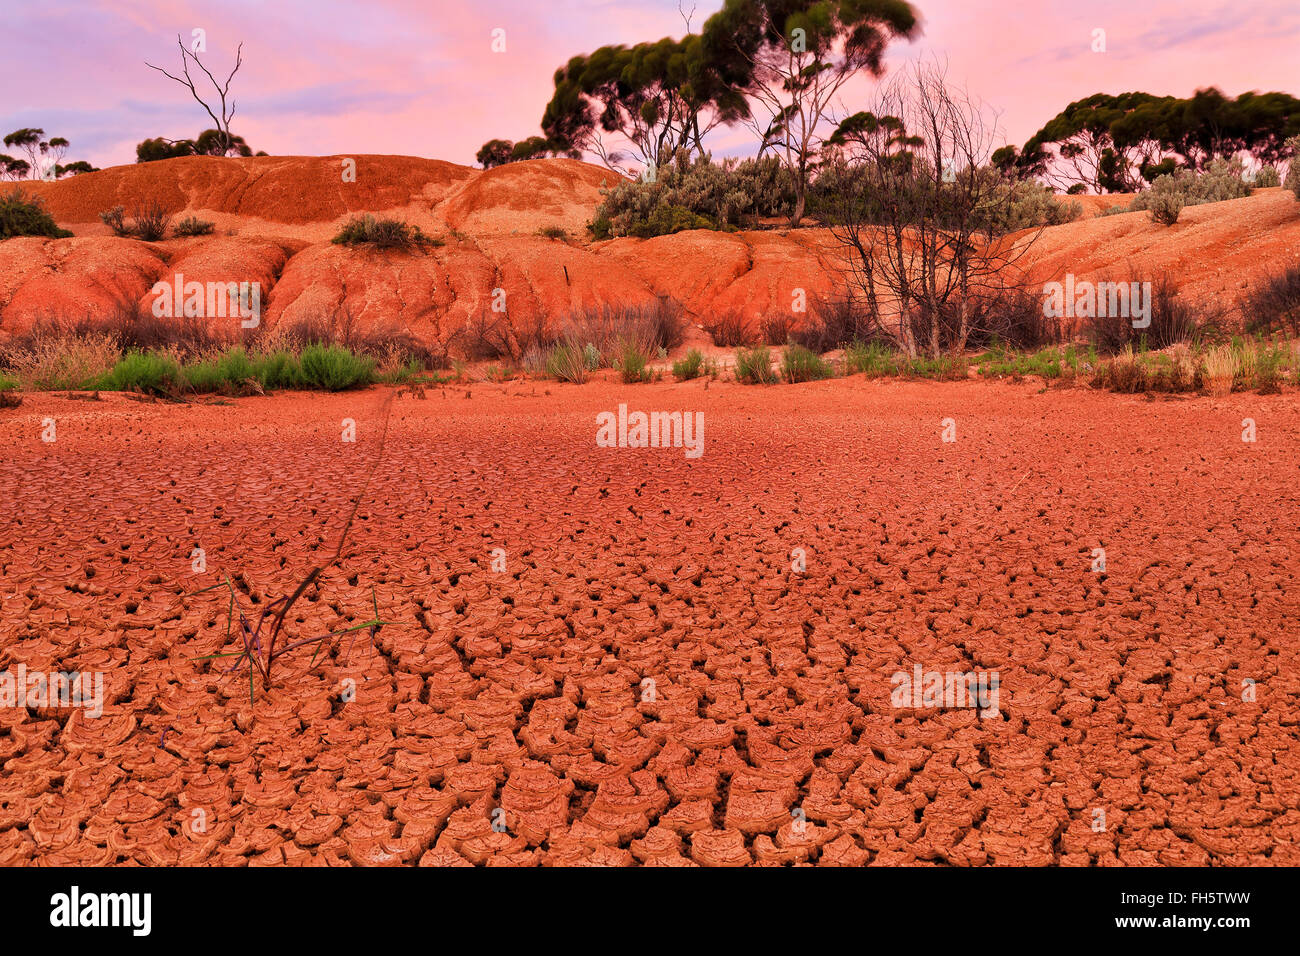 down to earth with red drought dirt soil of billabong in remote outback of Western Australia - Stock Image